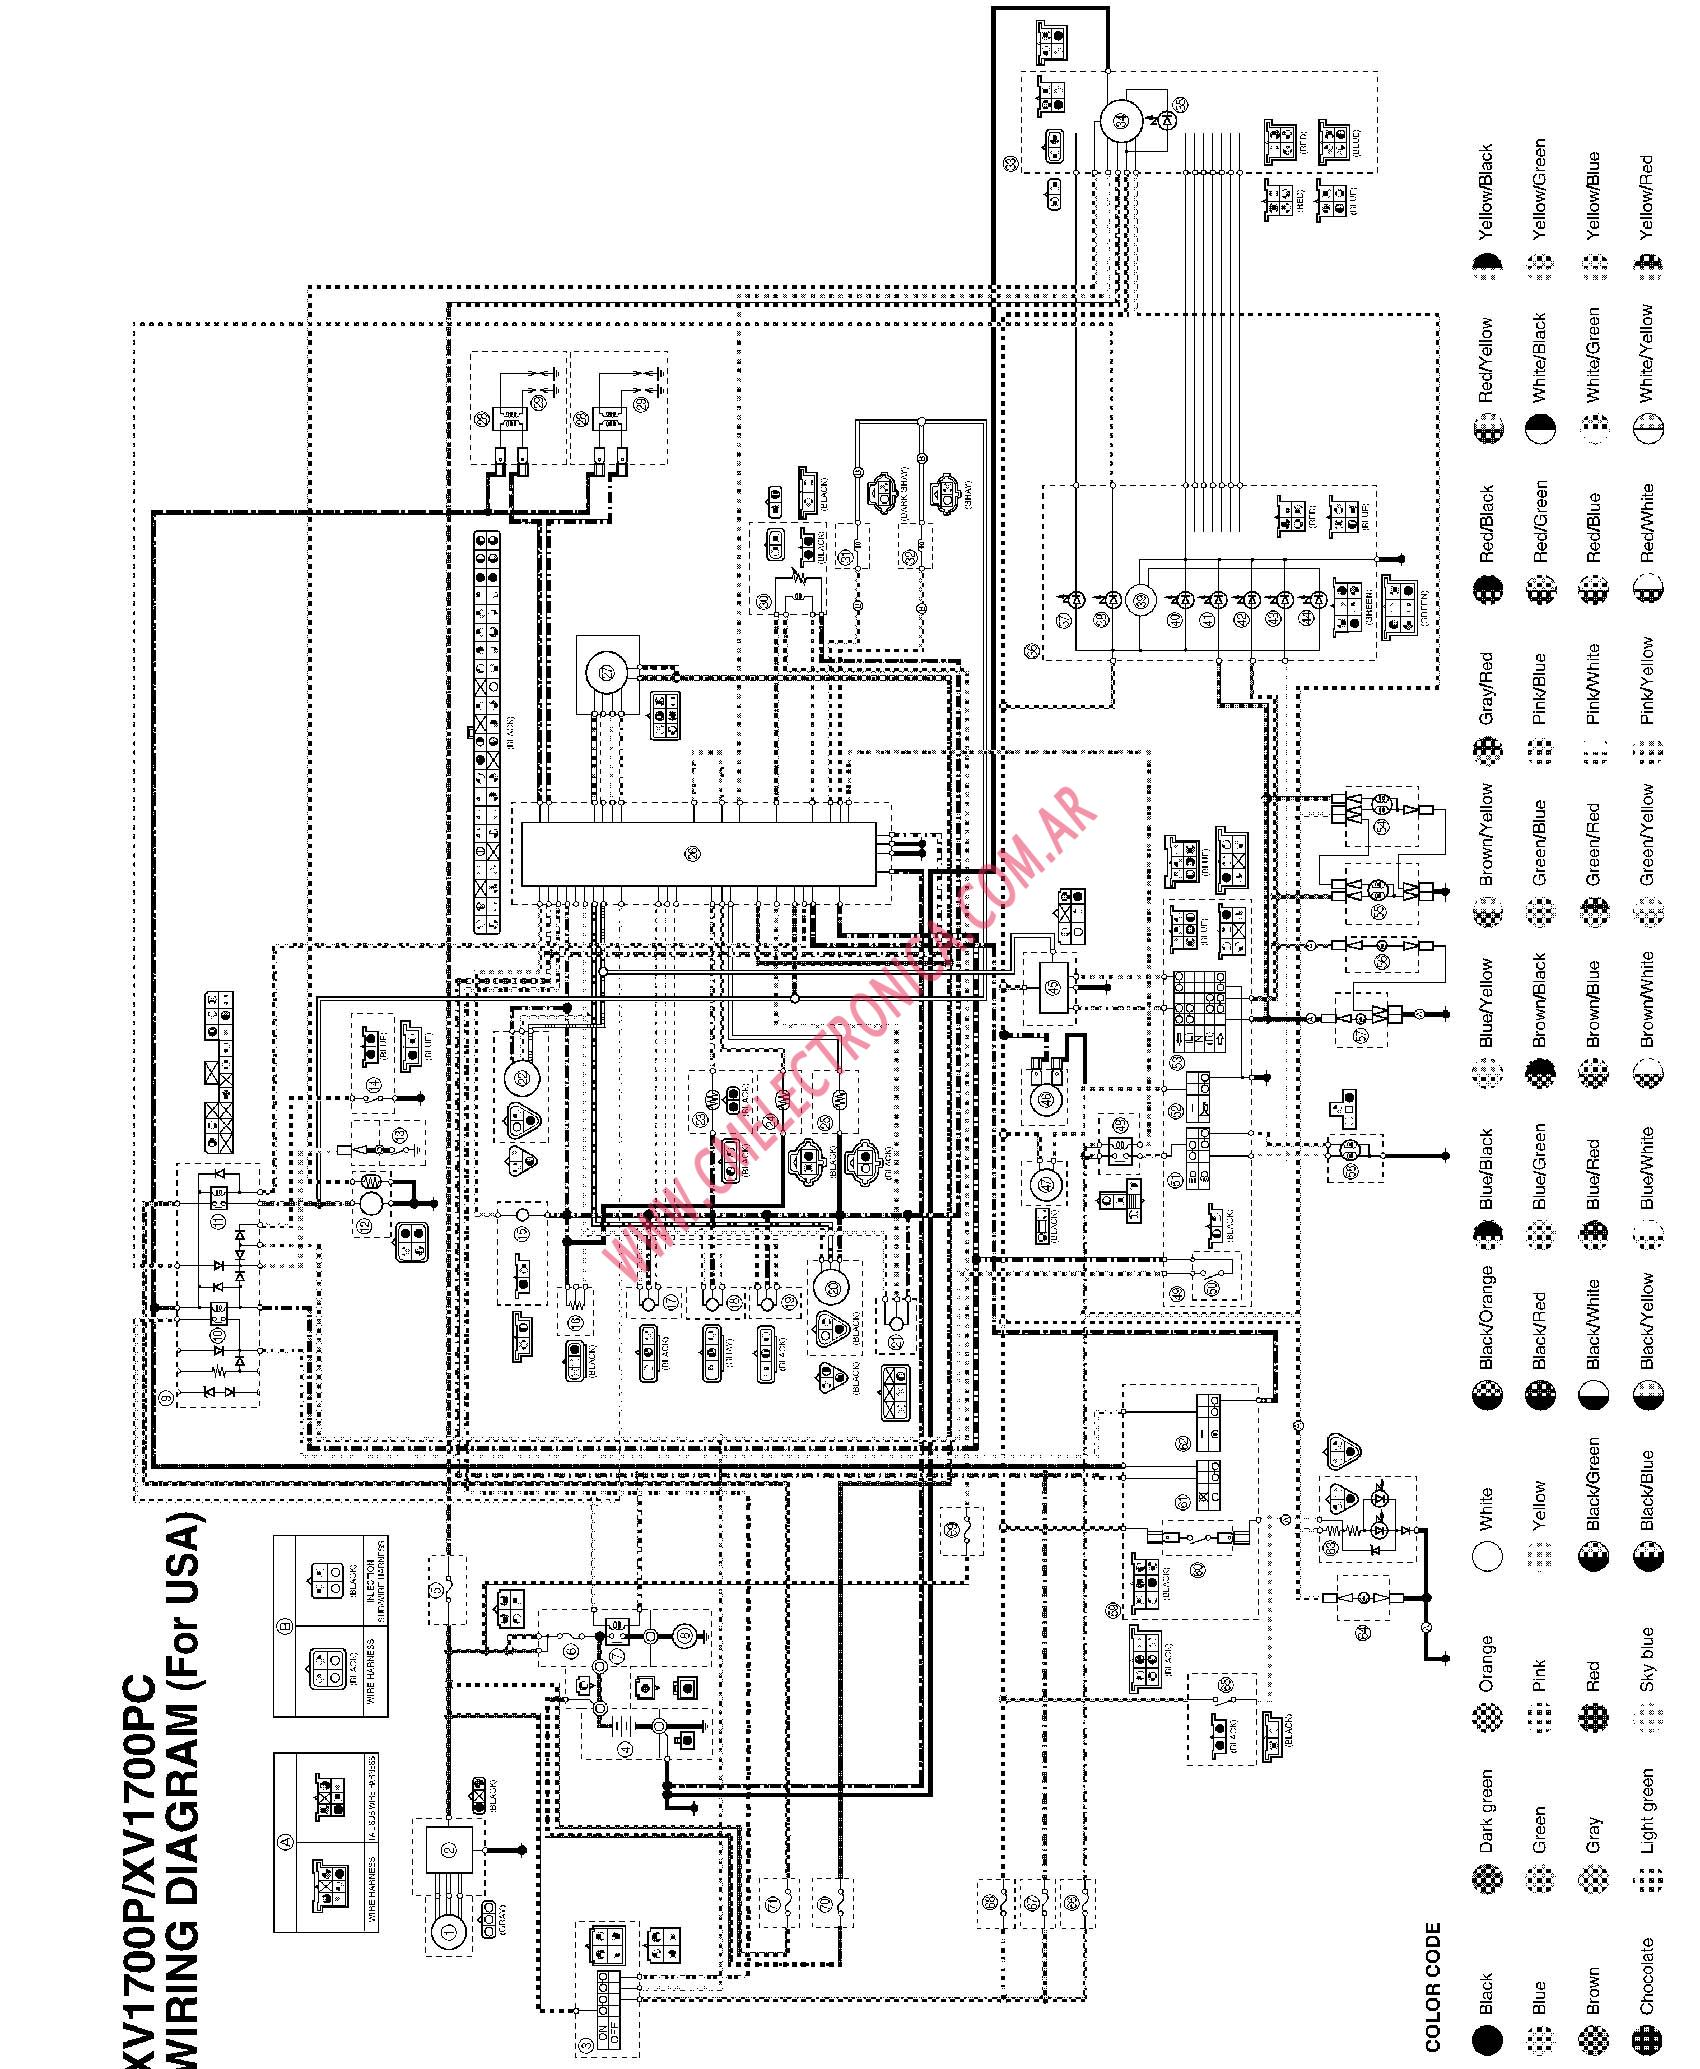 Appliance in addition Watch as well 48l88 Installed Thermolec Plenum 10u Heater Gas Furnace together with Zz5949 also Pcbfm103s Wiring Diagram. on coleman furnace wiring diagram